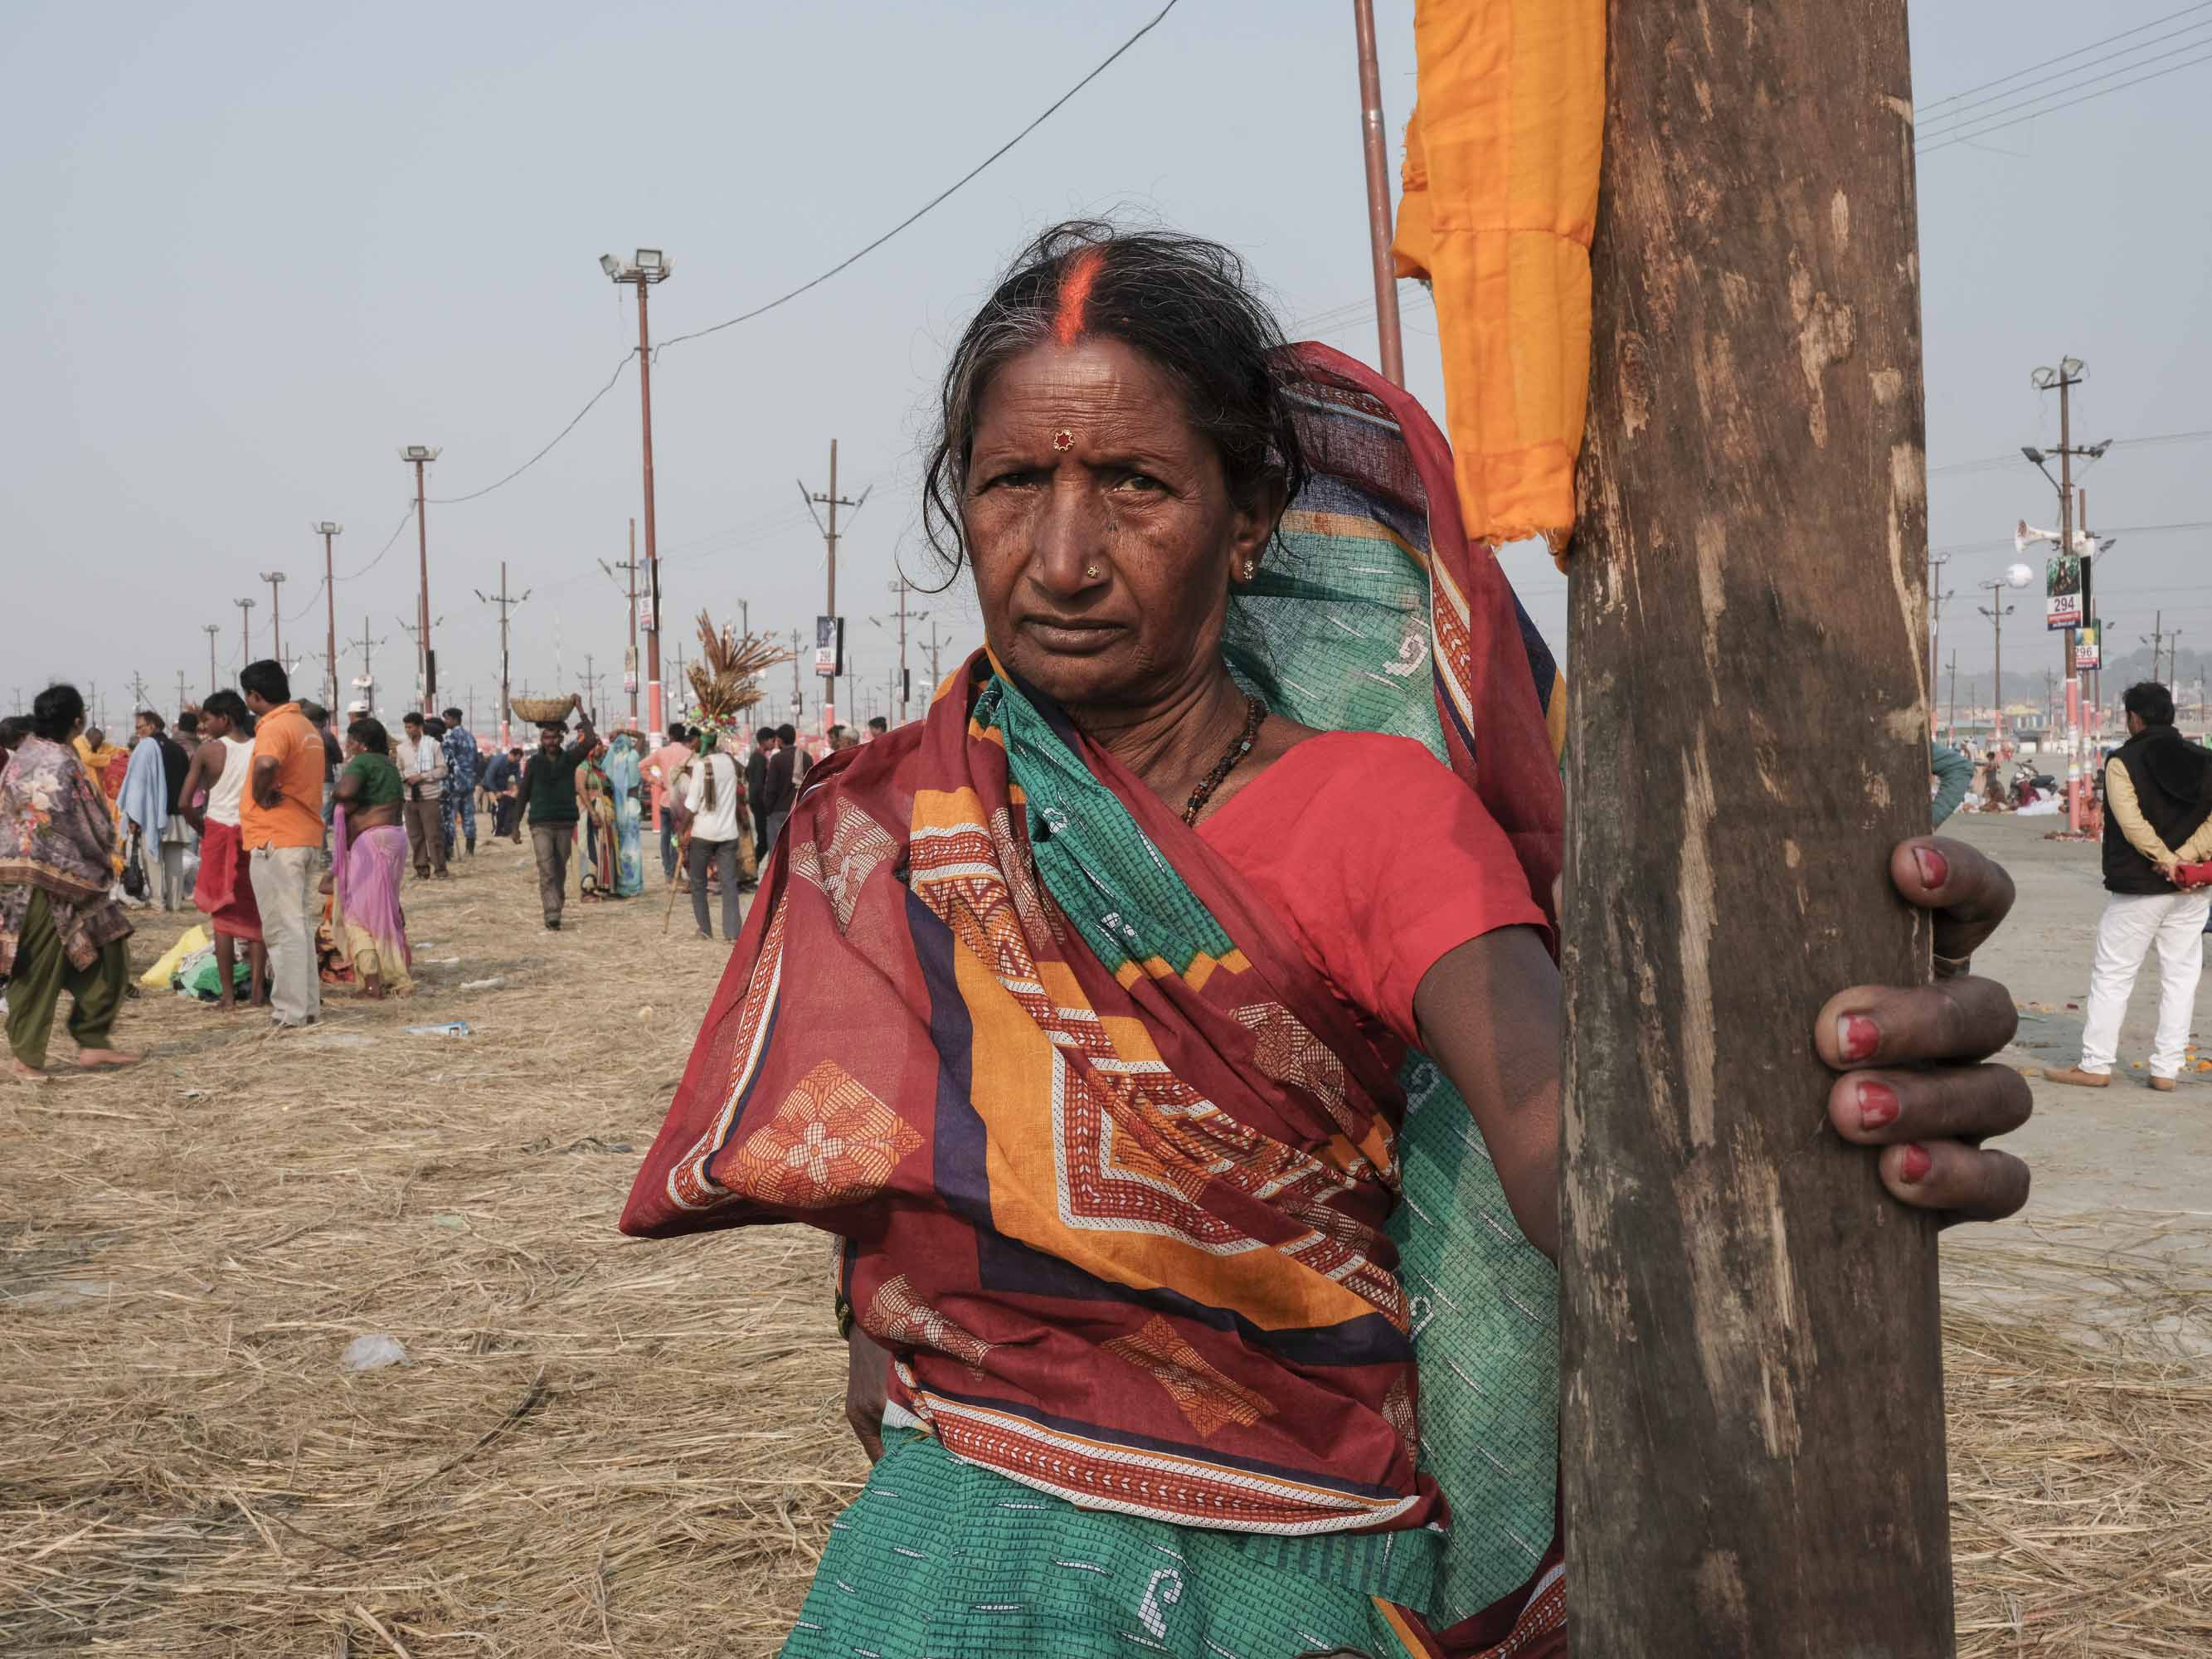 portrait lady sari pilgrims Kumbh mela 2019 India Allahabad Prayagraj Ardh hindu religious Festival event rivers photographer jose jeuland photography